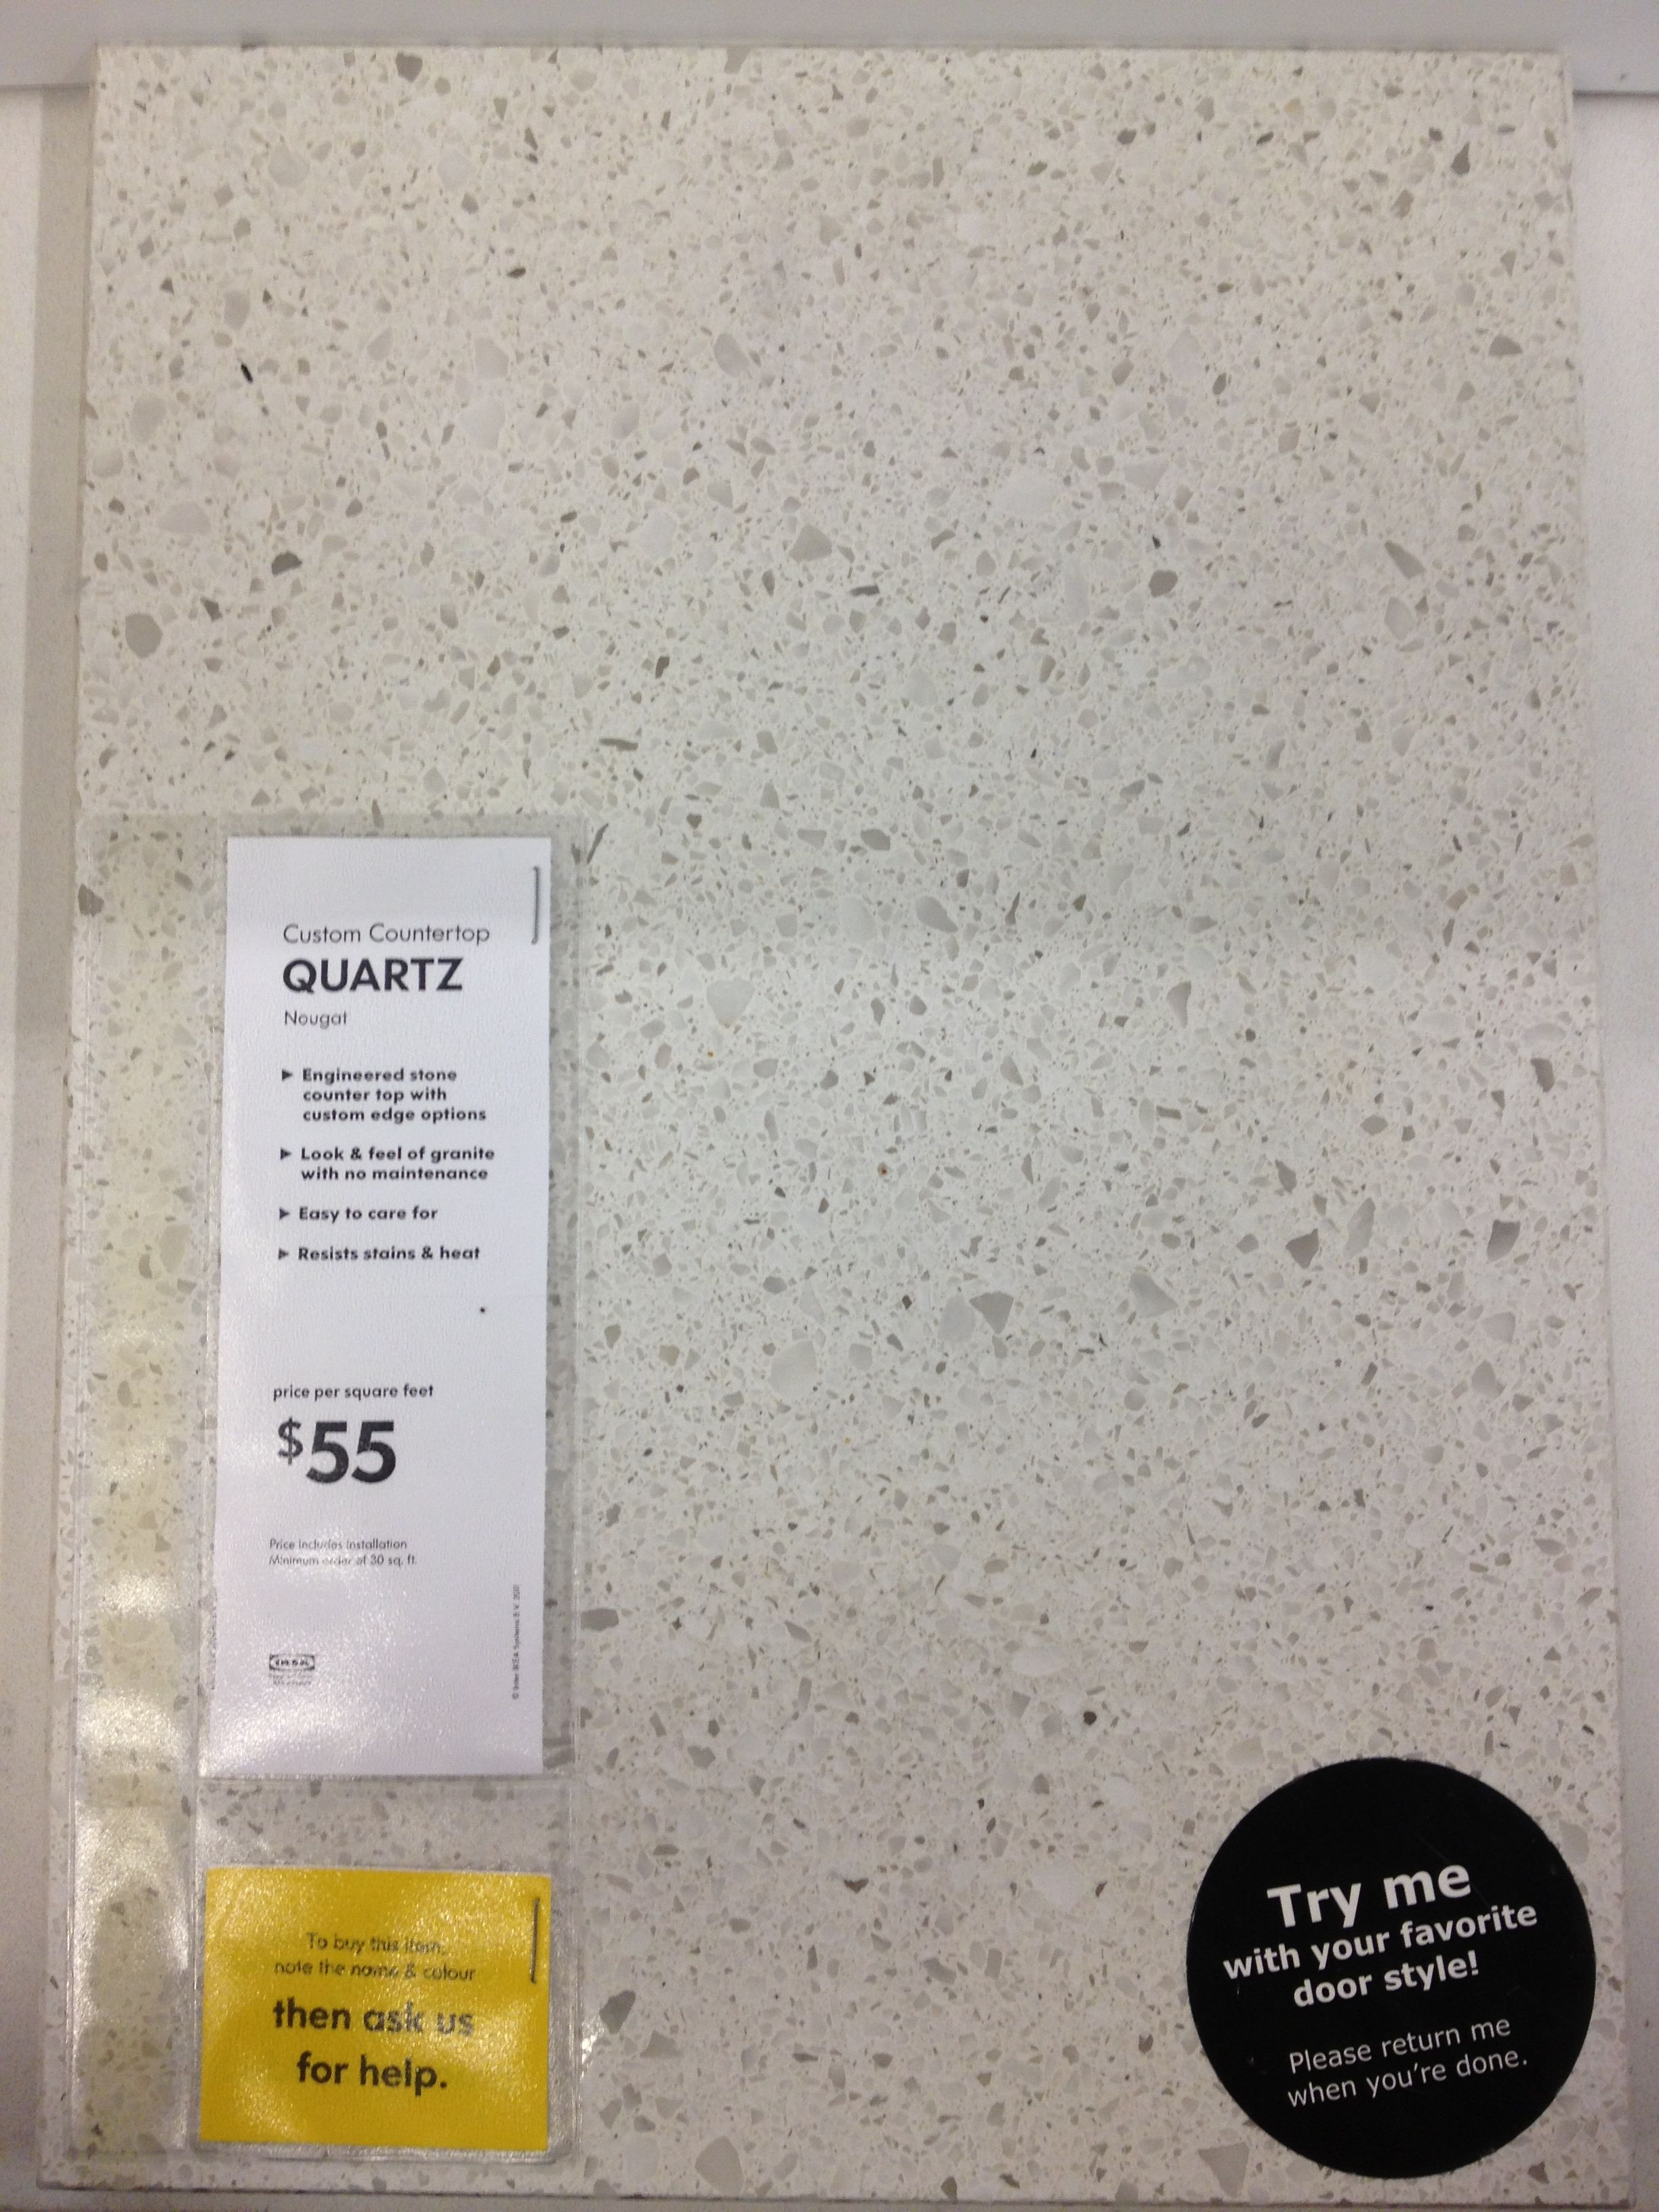 Ikea Quartz Countertop Nougat This Would Look Good W White But Unlike Marble It Wou Ikea Quartz Countertop Ikea Kitchen Countertops Quartz Kitchen Countertops